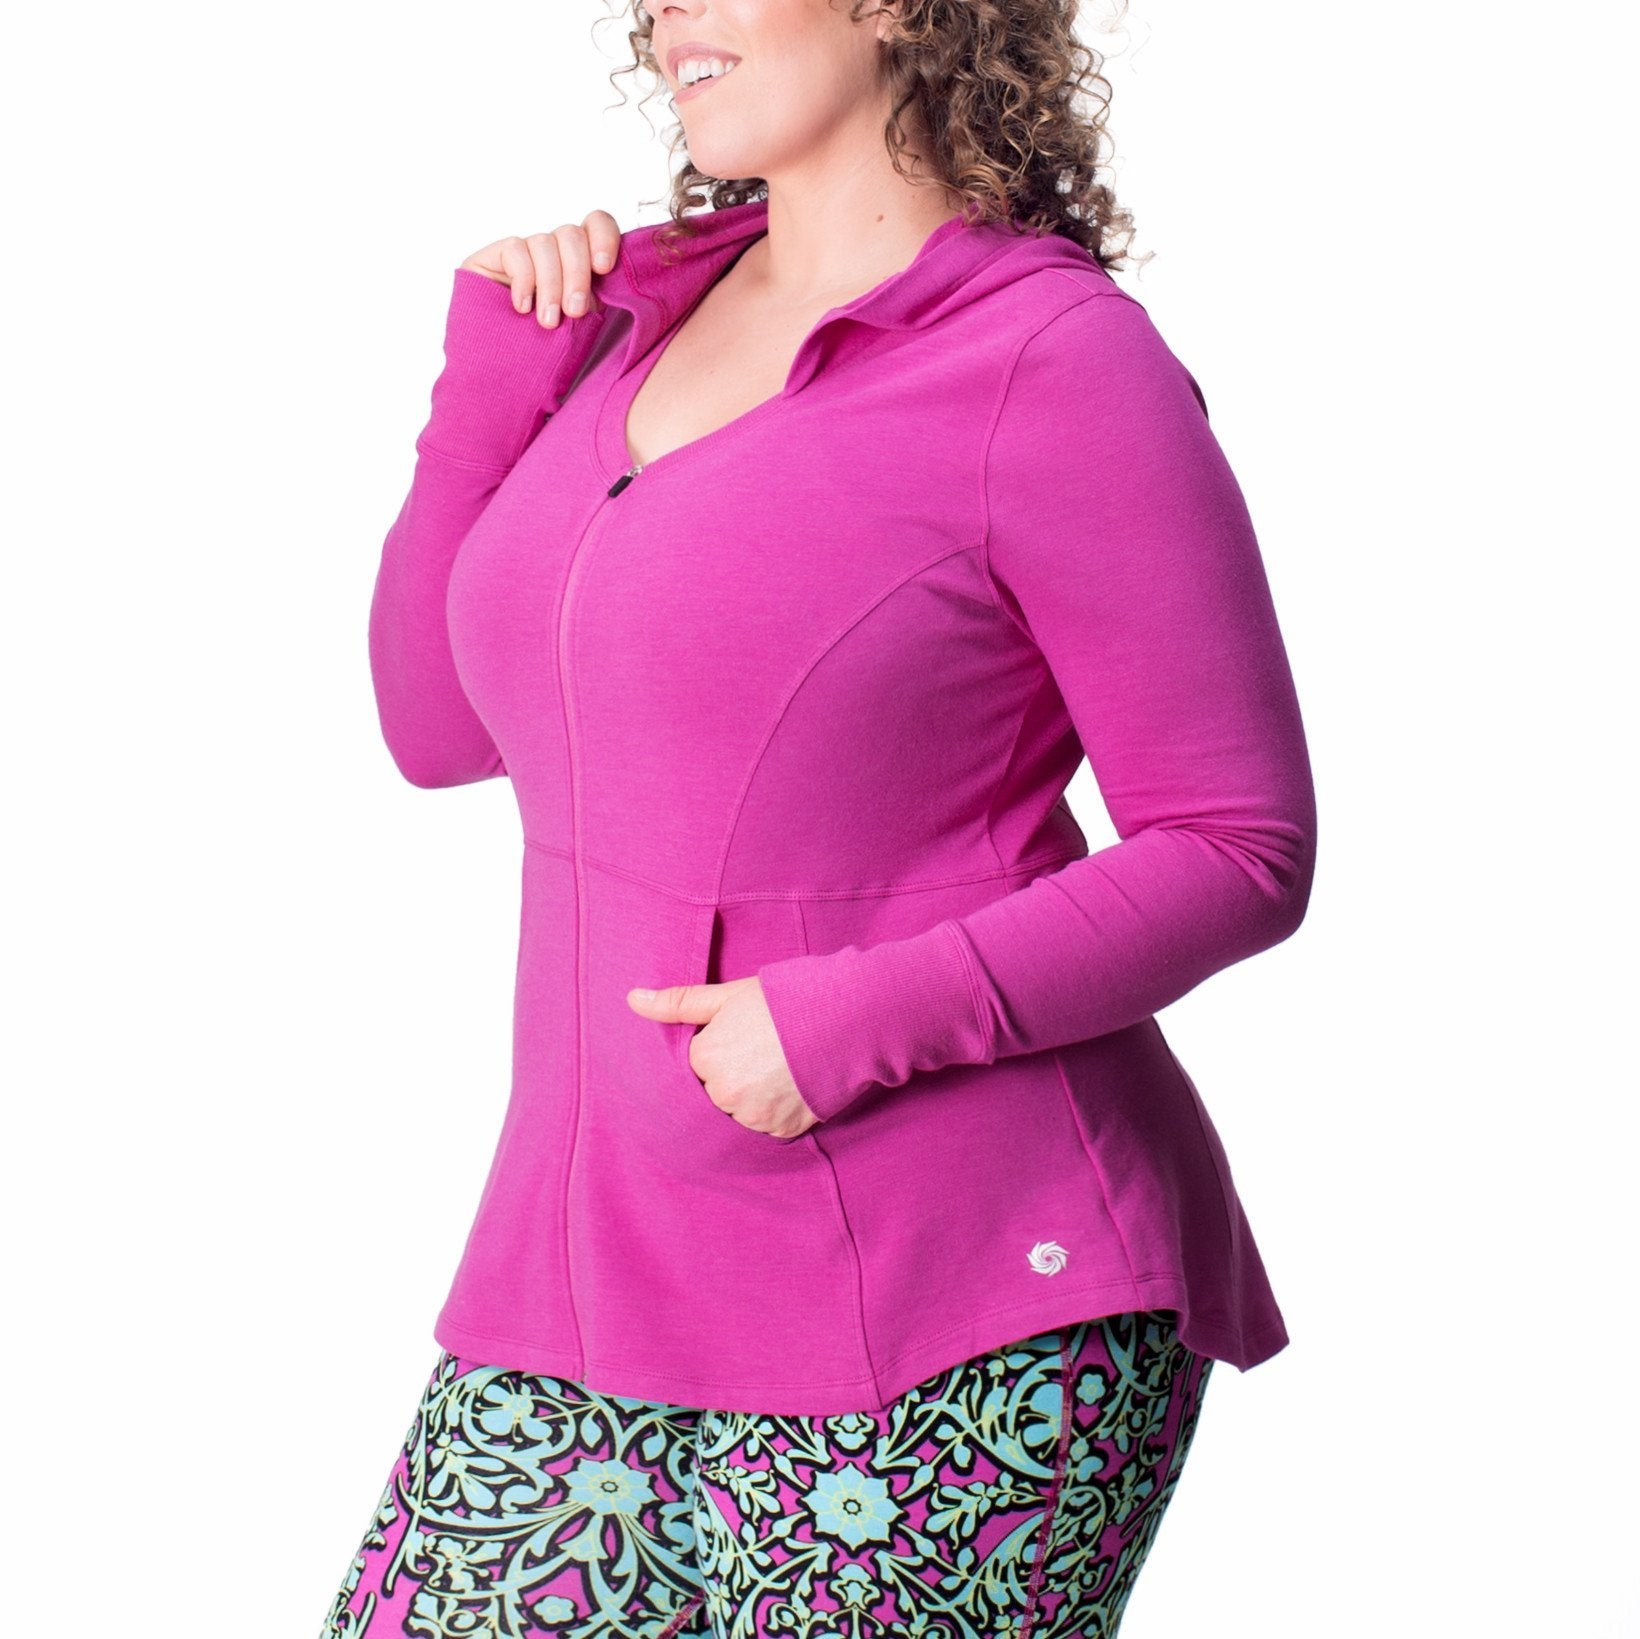 Hayley Hoodie - Rainbeau Curves, 14/16 / Wild Orchid Heather, activewear, athleisure, fitness, workout, gym, performance, womens, ladies, plus size, curvy, full figured, spandex, cotton, polyester - 1